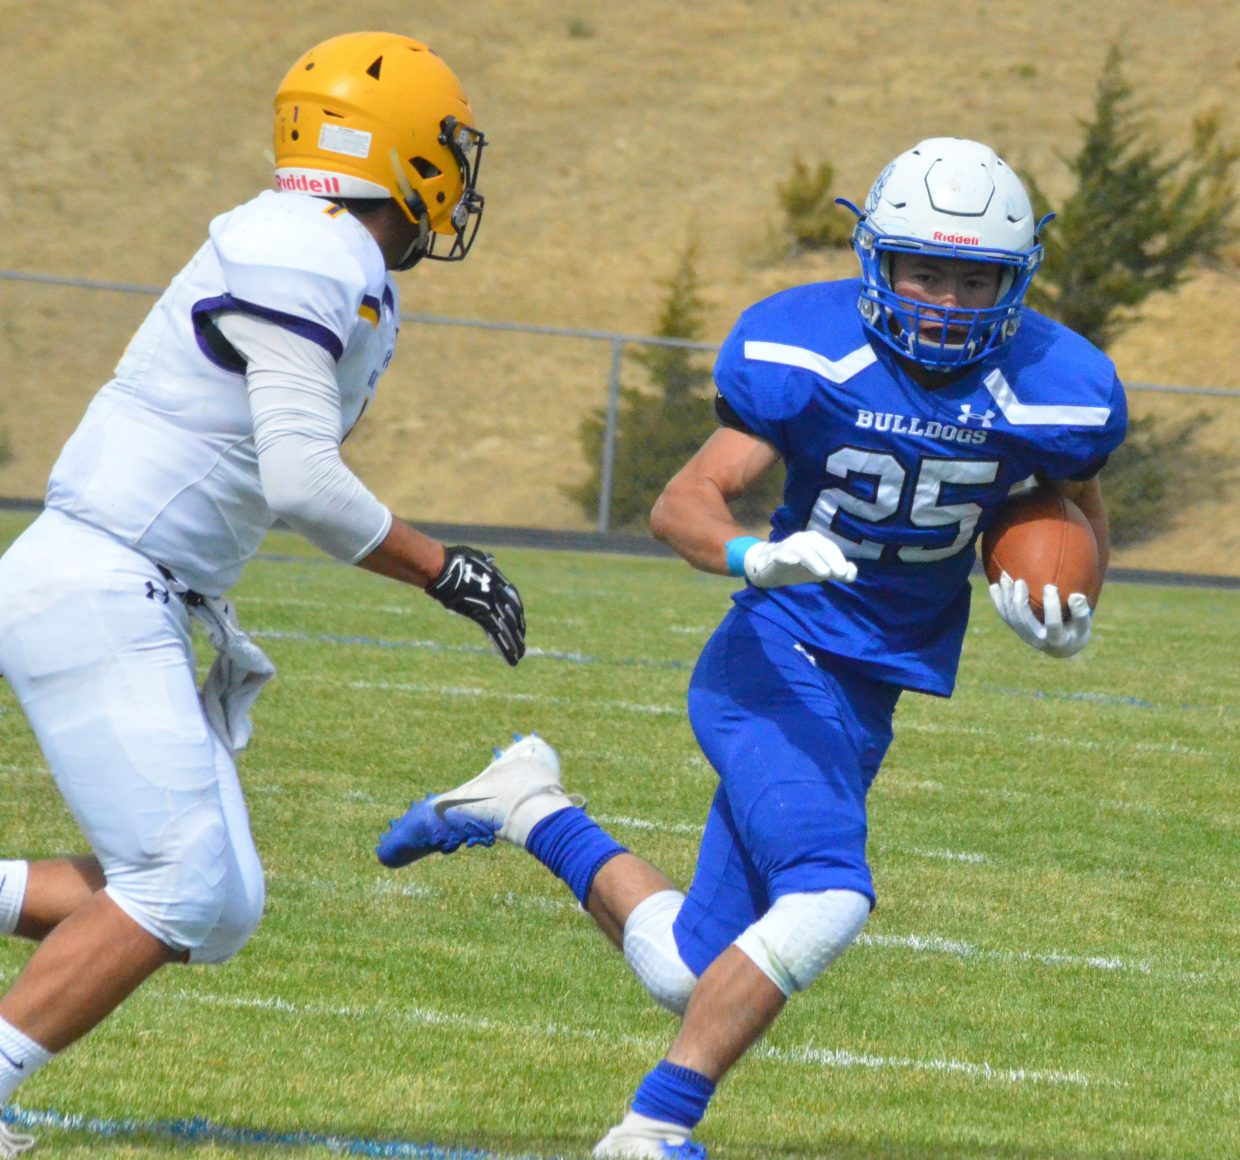 Moffat County High School's Josh Teeter sweeps out to get around Basalt during Saturday's Homecoming game.